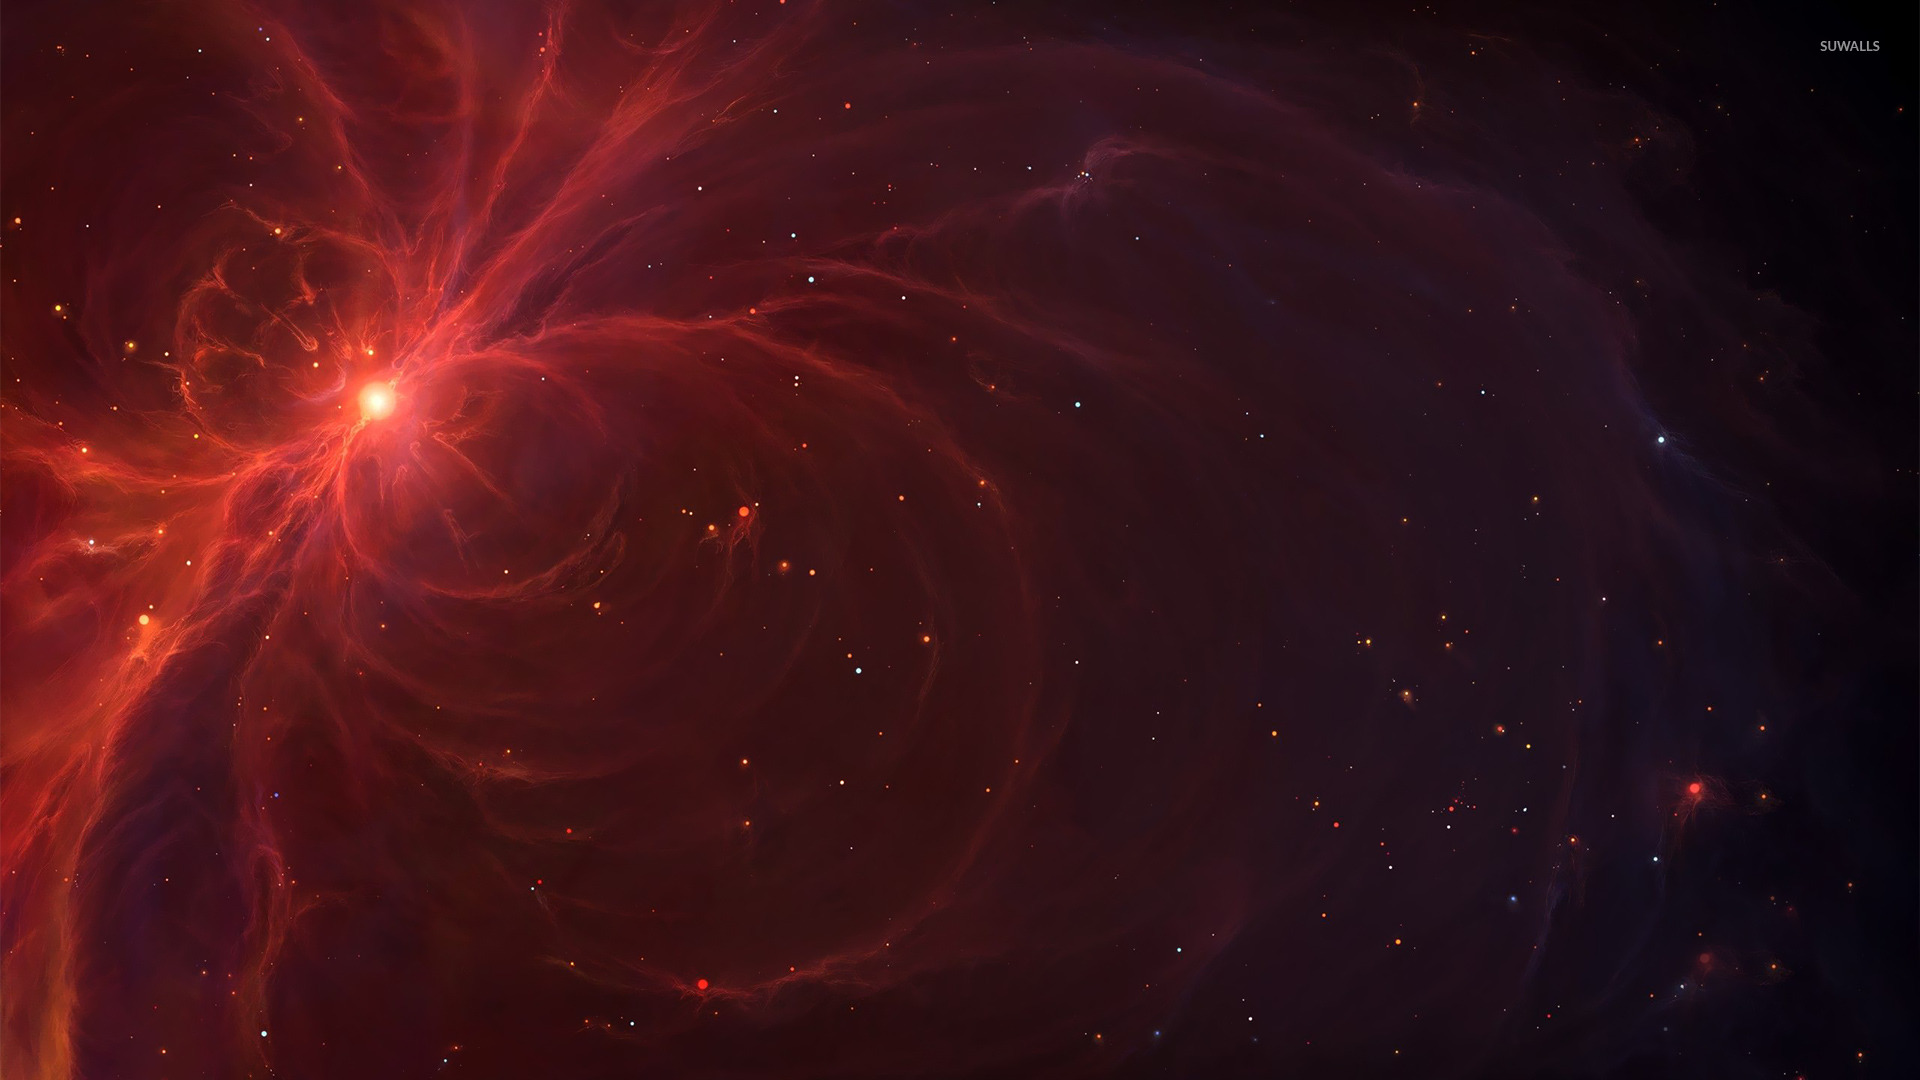 Red Nebula Wallpaper